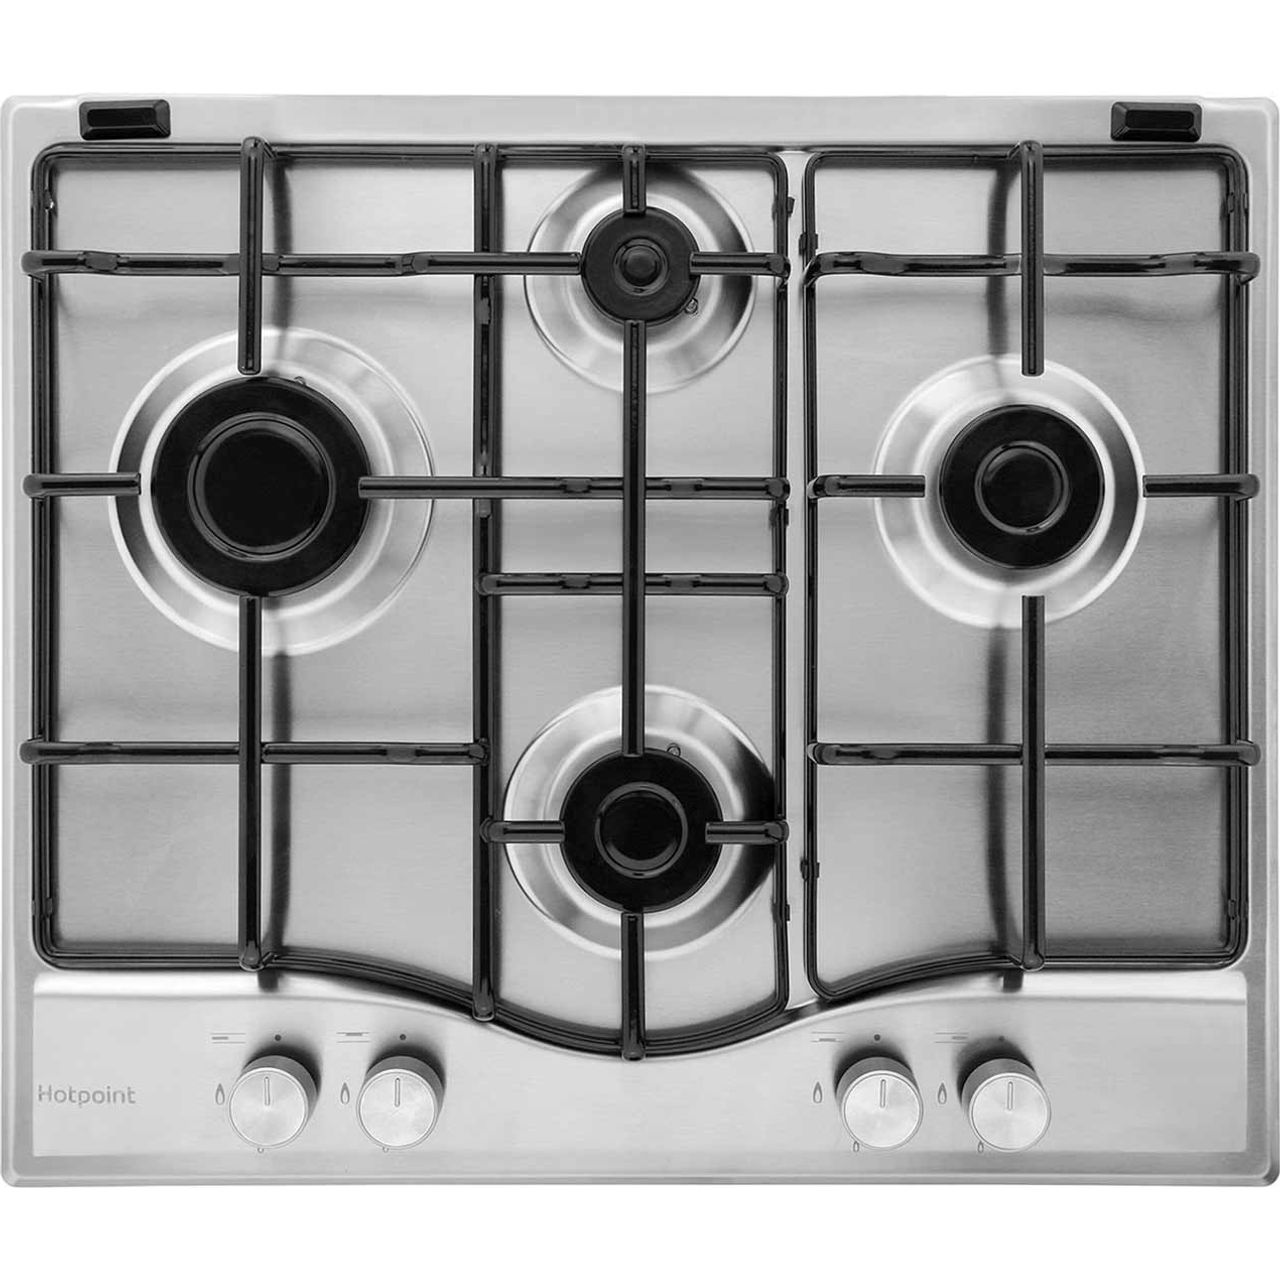 Hotpoint Newstyle PCN642IXH Integrated Gas Hob in Stainless Steel